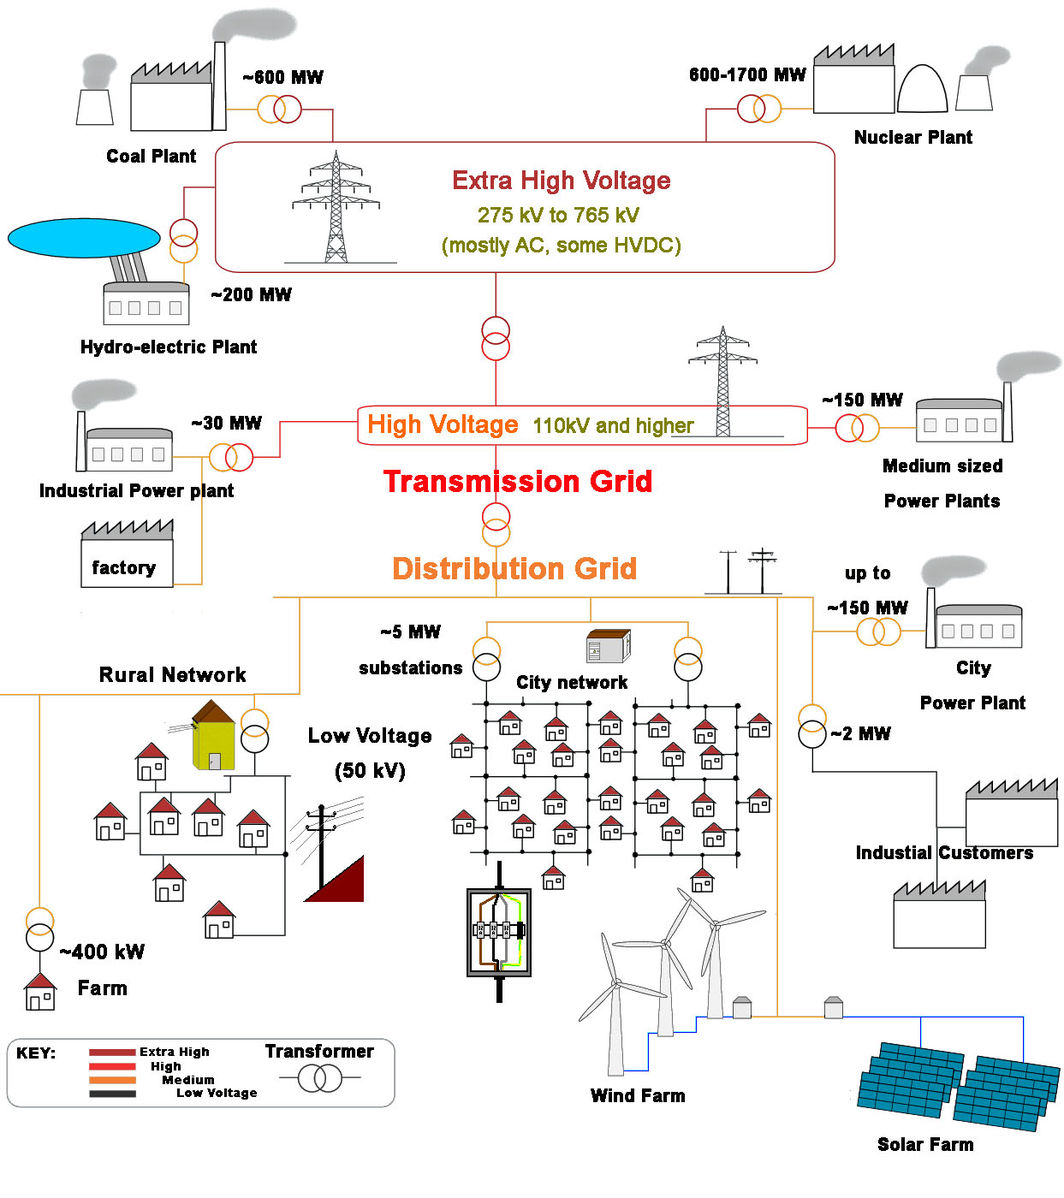 electricity electrical grids essay The purpose of this essay is to describe how and why electricity electricity: electrical grids cornell university entre essay to the electrical.